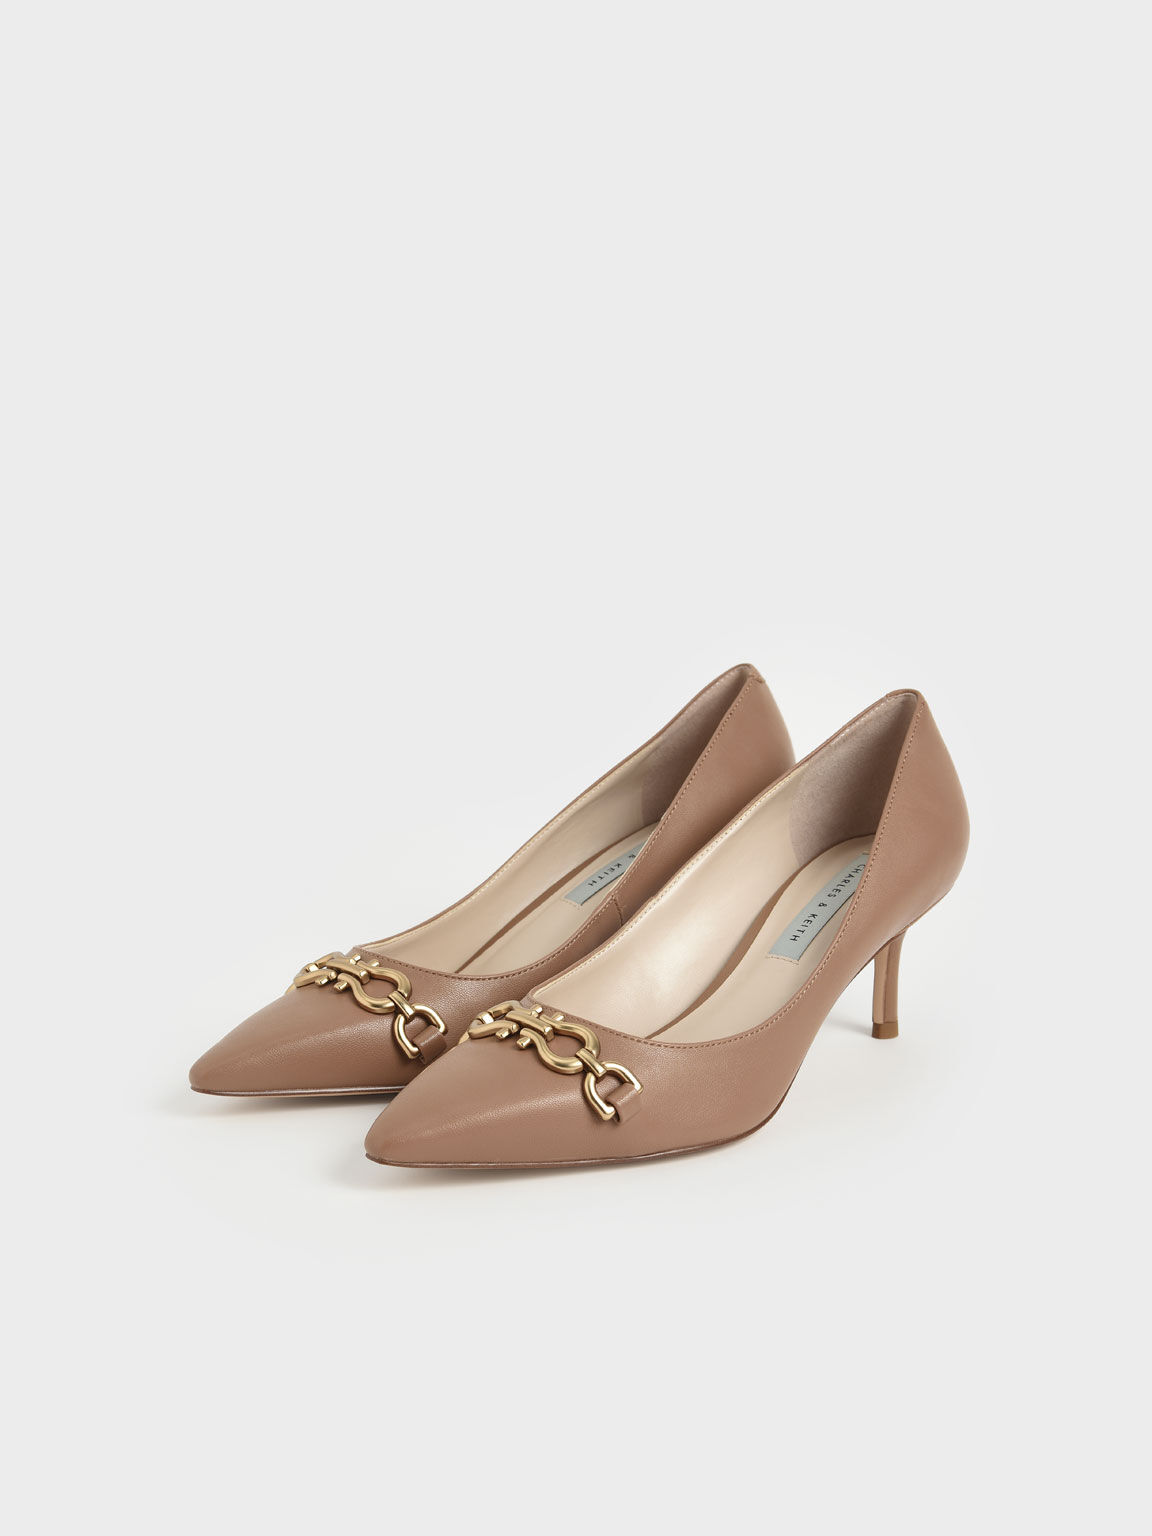 Chain Link Pointed Toe Pumps, Camel, hi-res